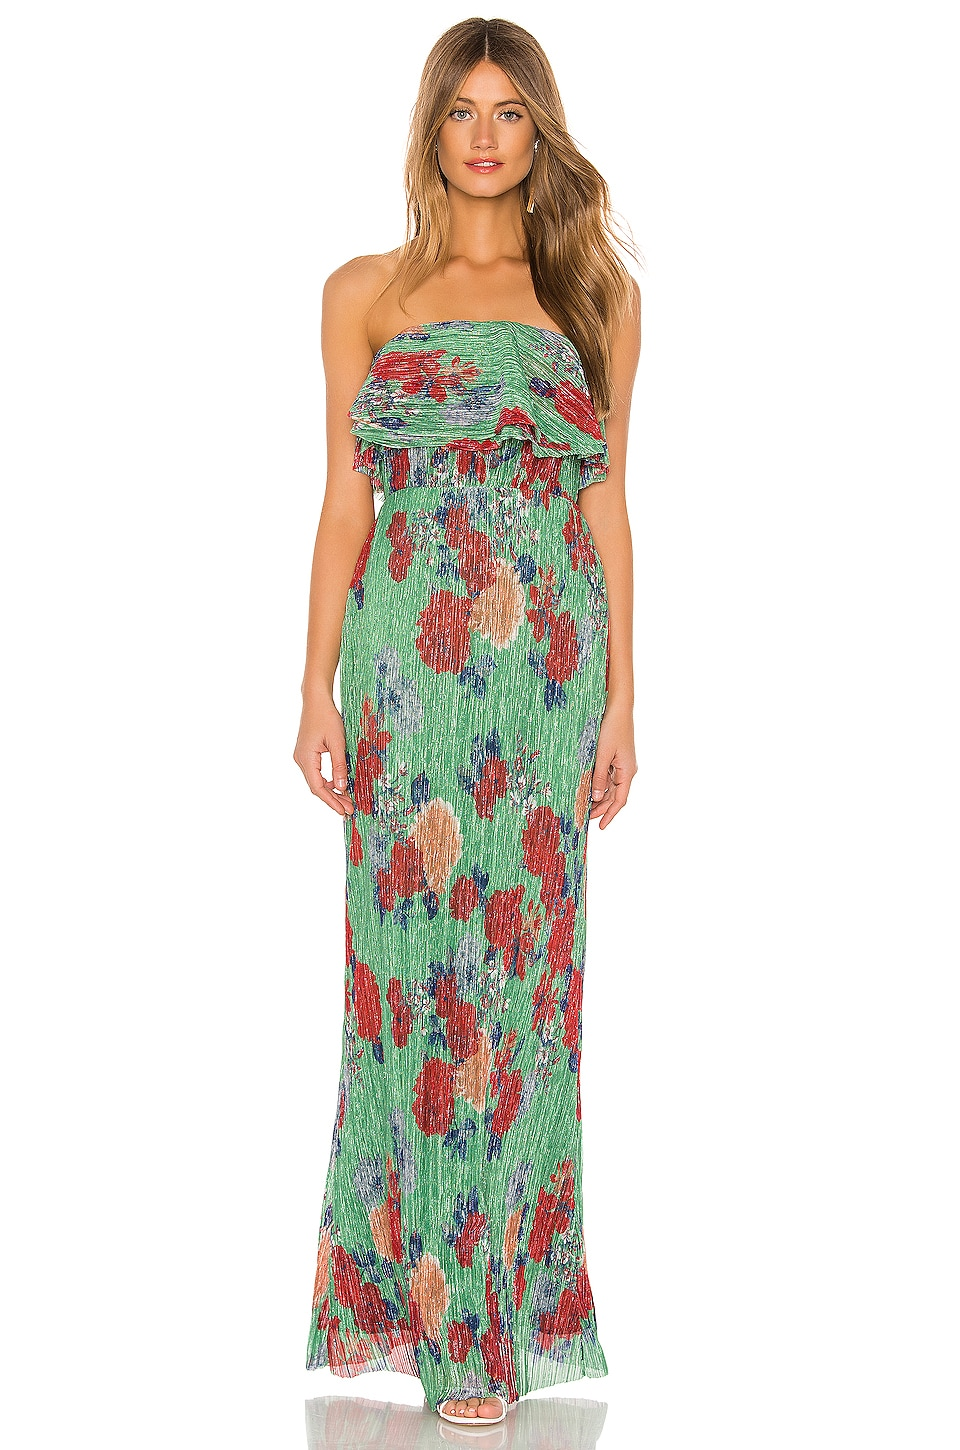 Lovers + Friends Ash Gown in Multicolor